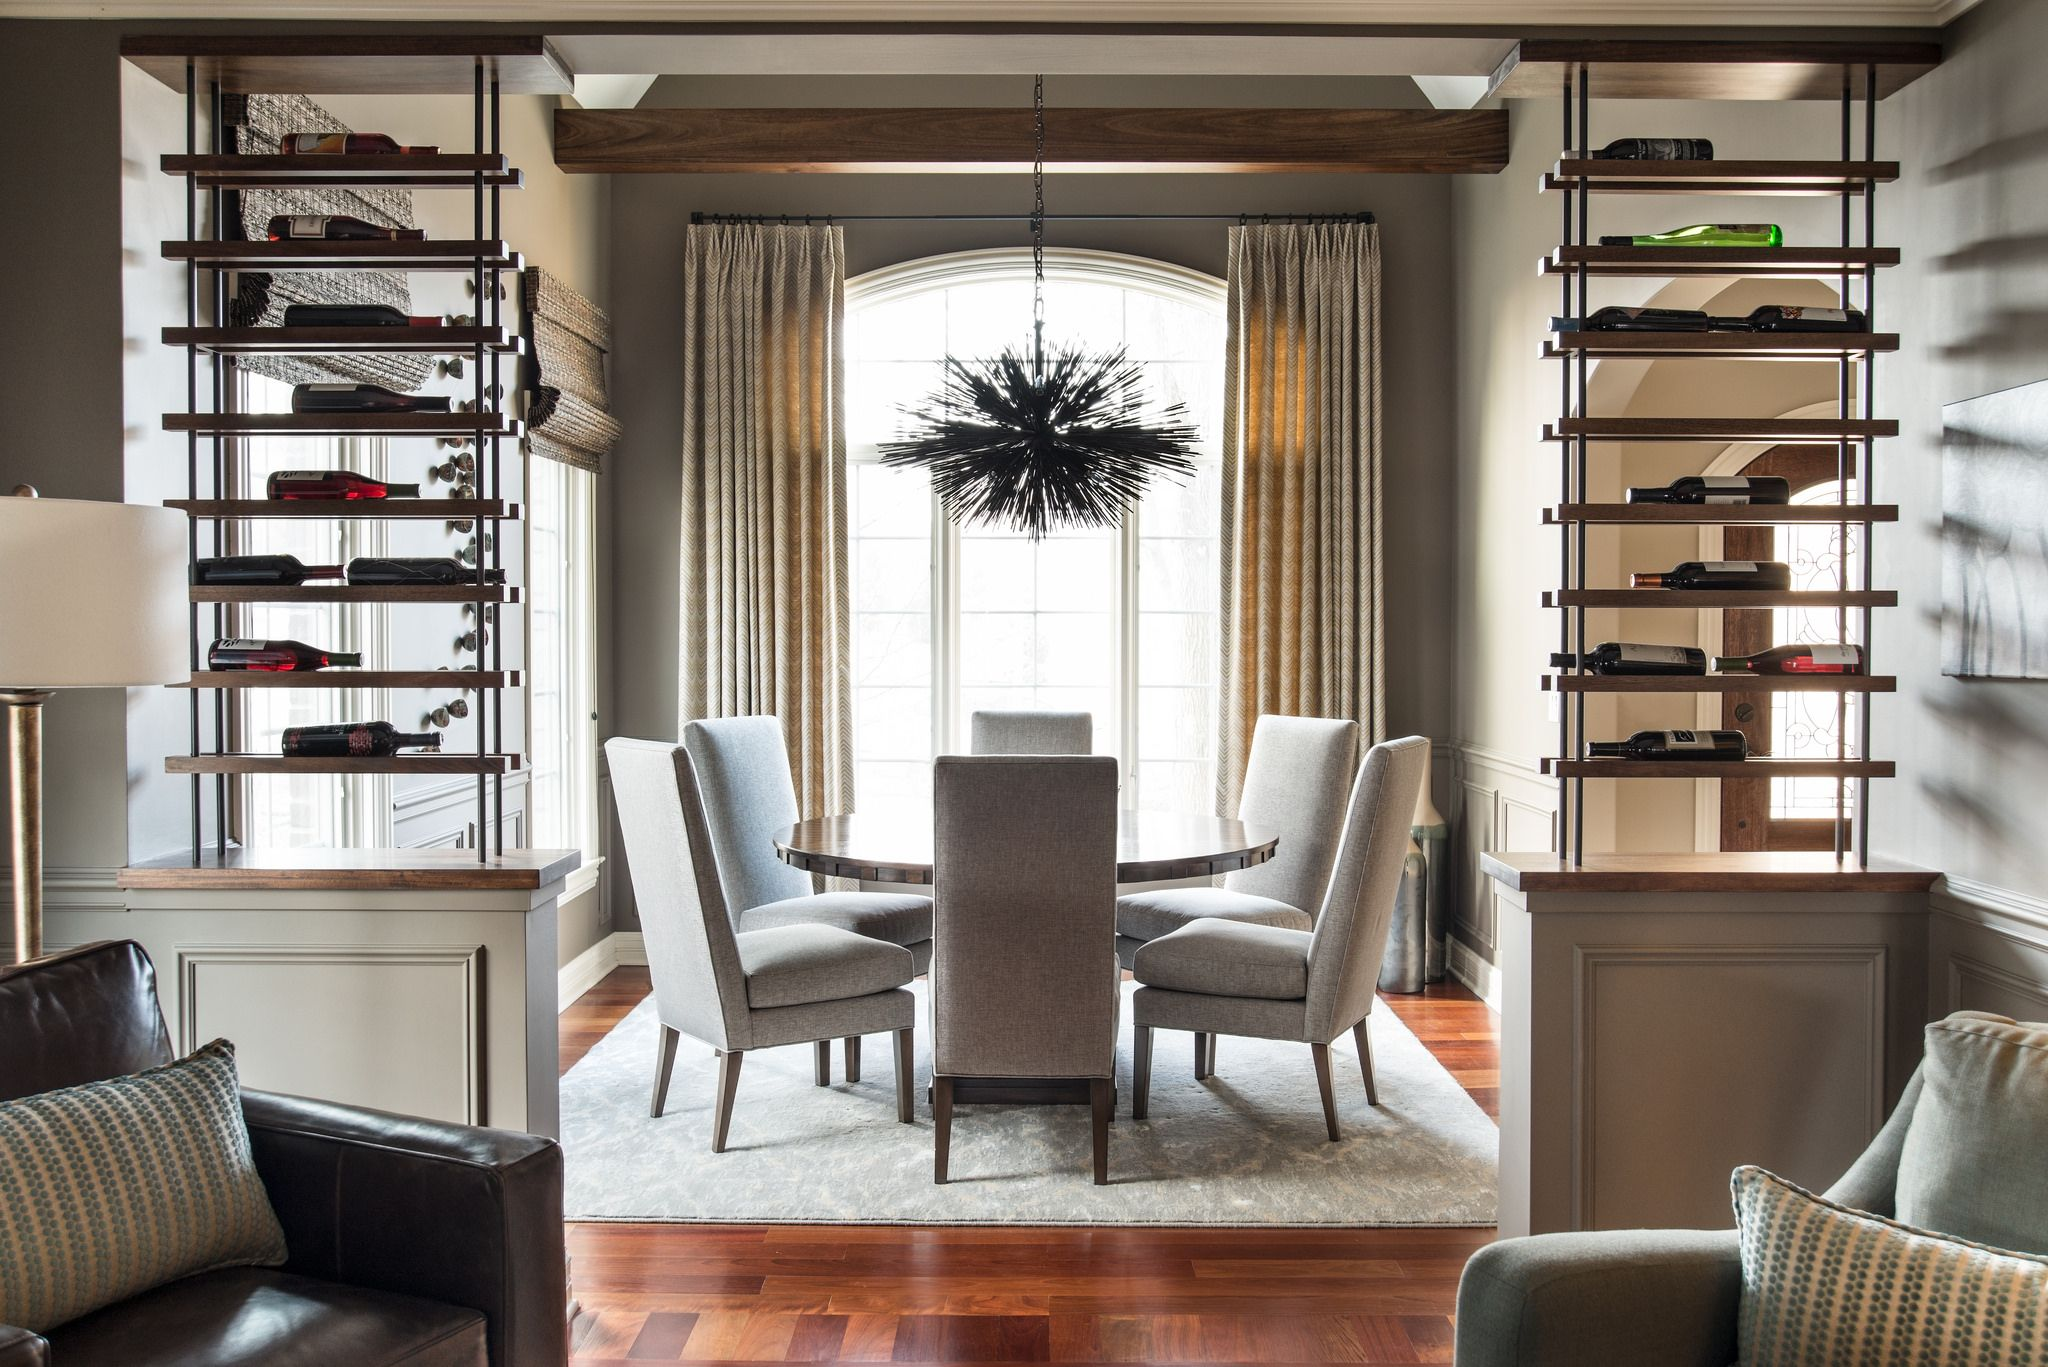 Wine Racks as a divider in dining room on area rug